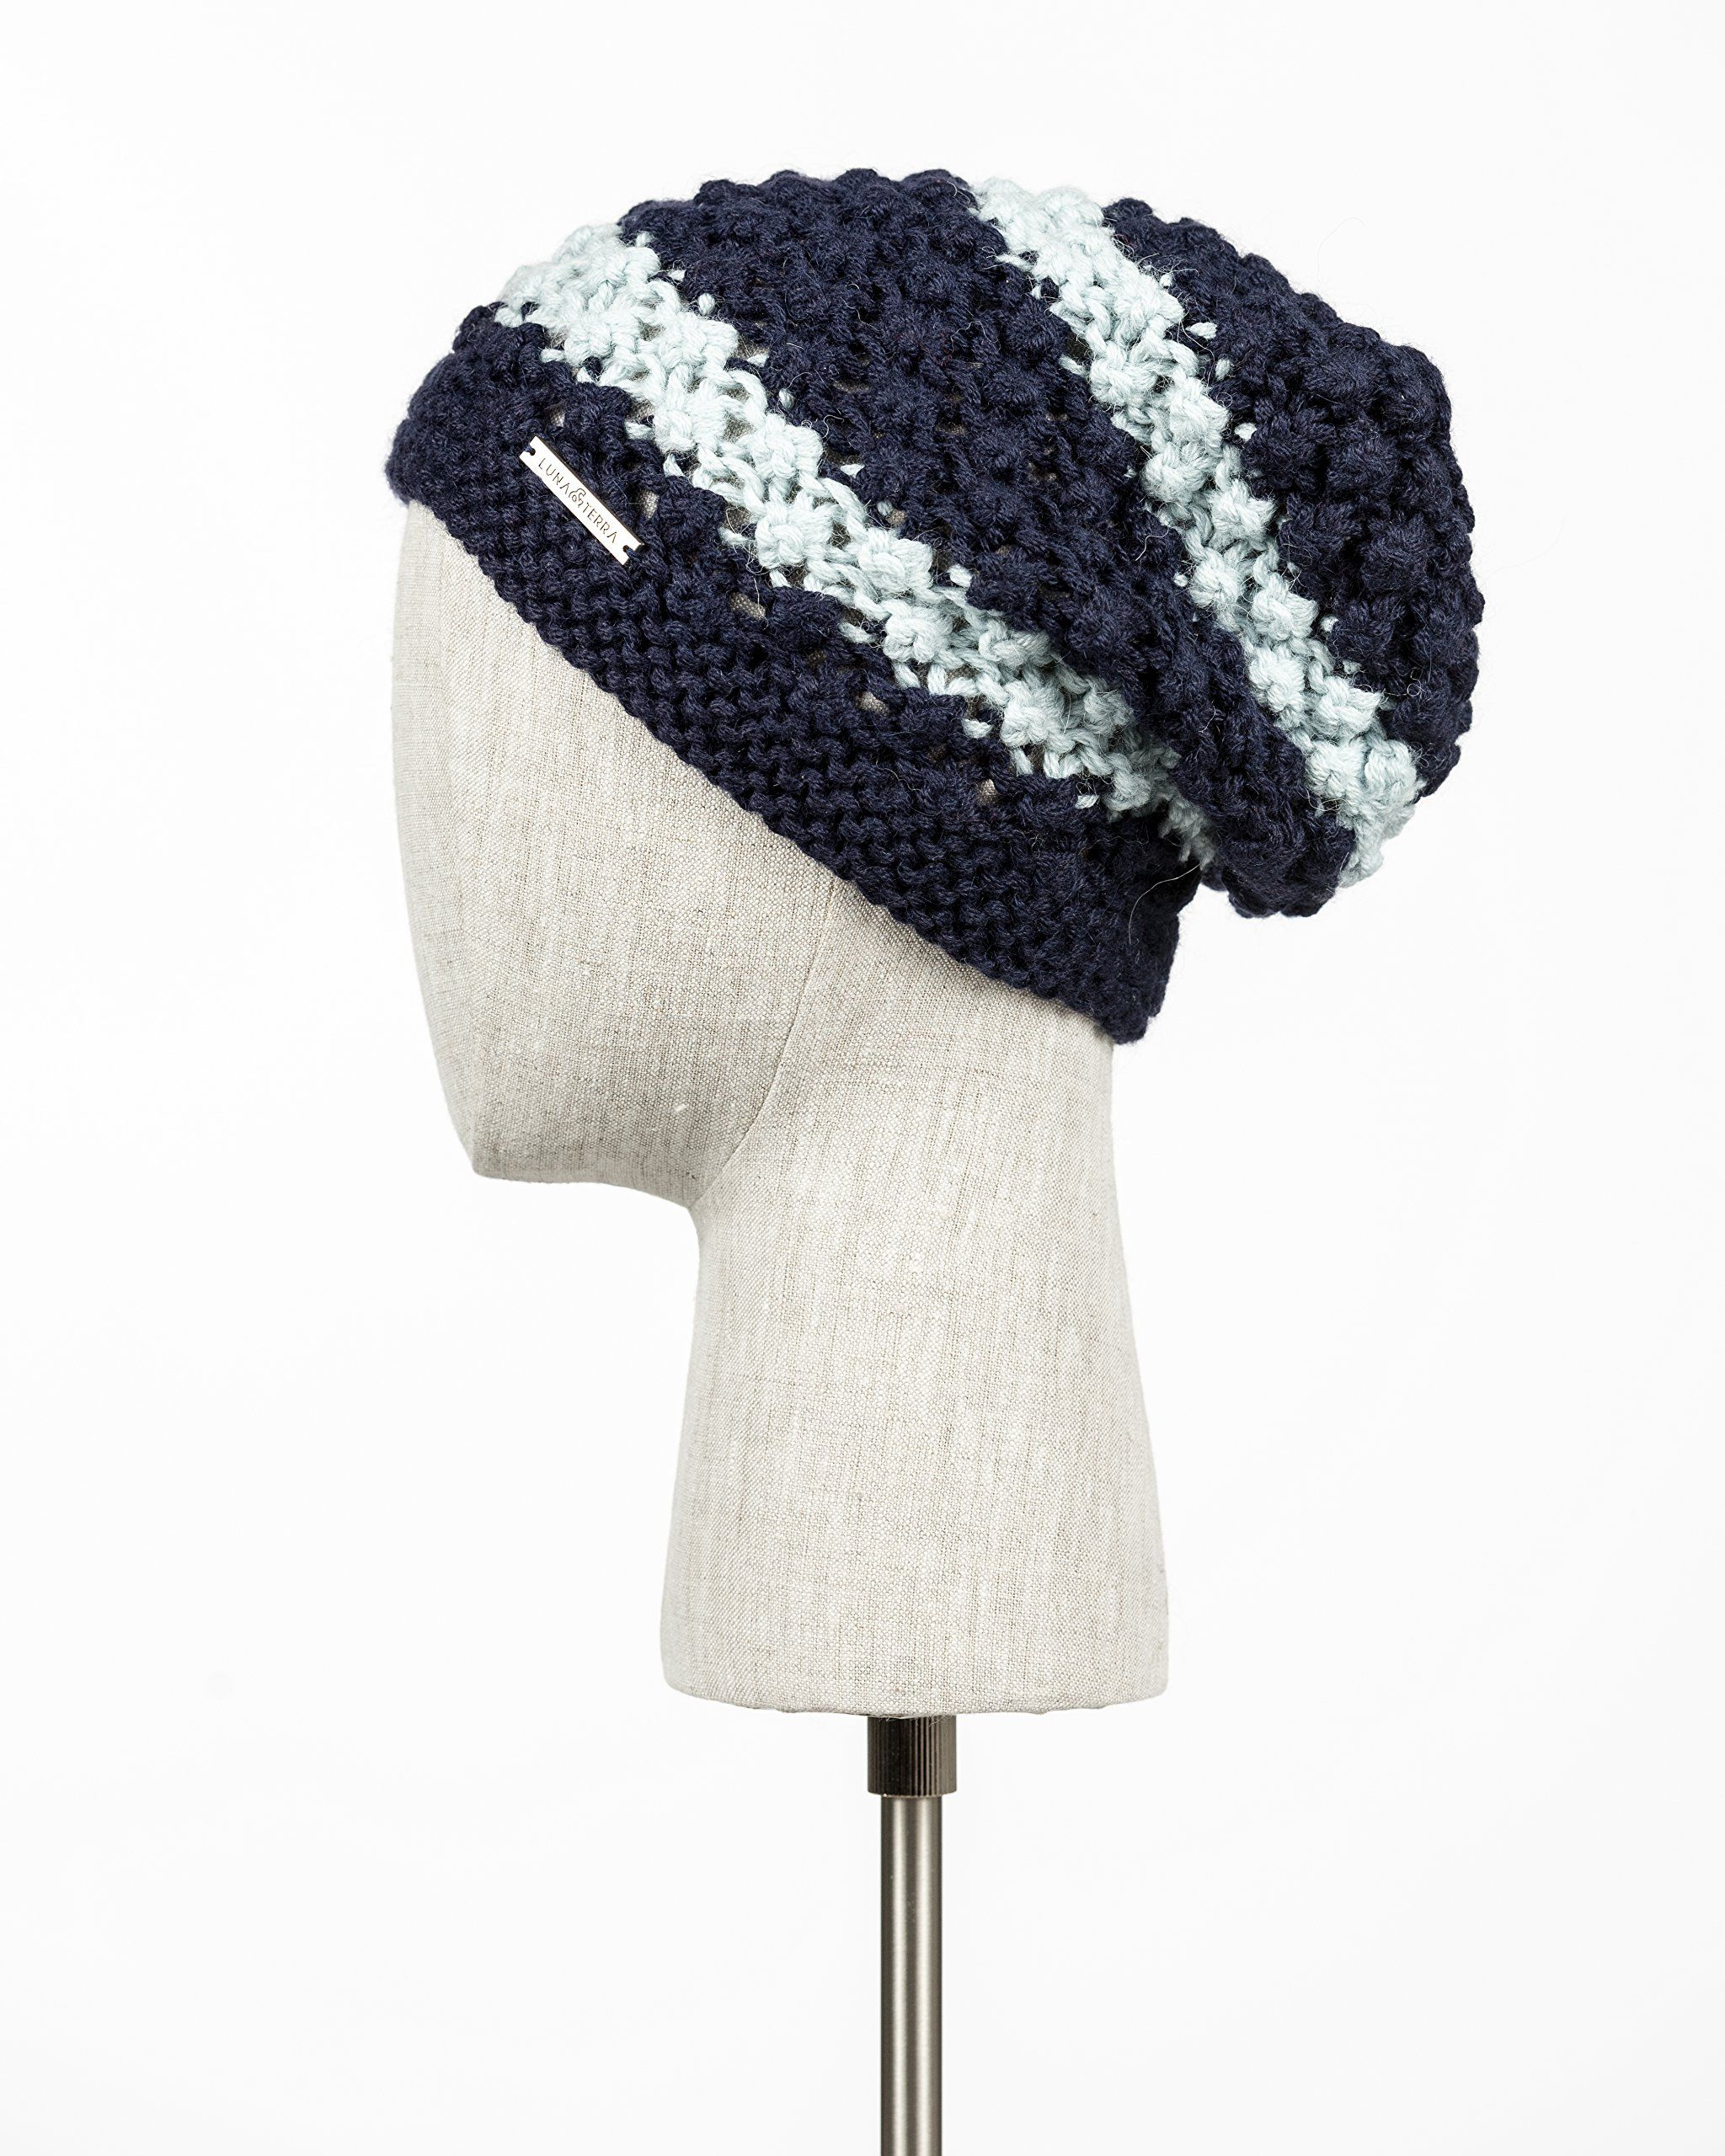 e6aa6c312c9 VERONA Winter Fall Handmade Slouchy Hat Beanie Design PURE ALPACA Knitted  100% Baby Alpaca Stripes Chunky Mulberry Pattern for Women (Navy  Blue Glacier Ice) ...